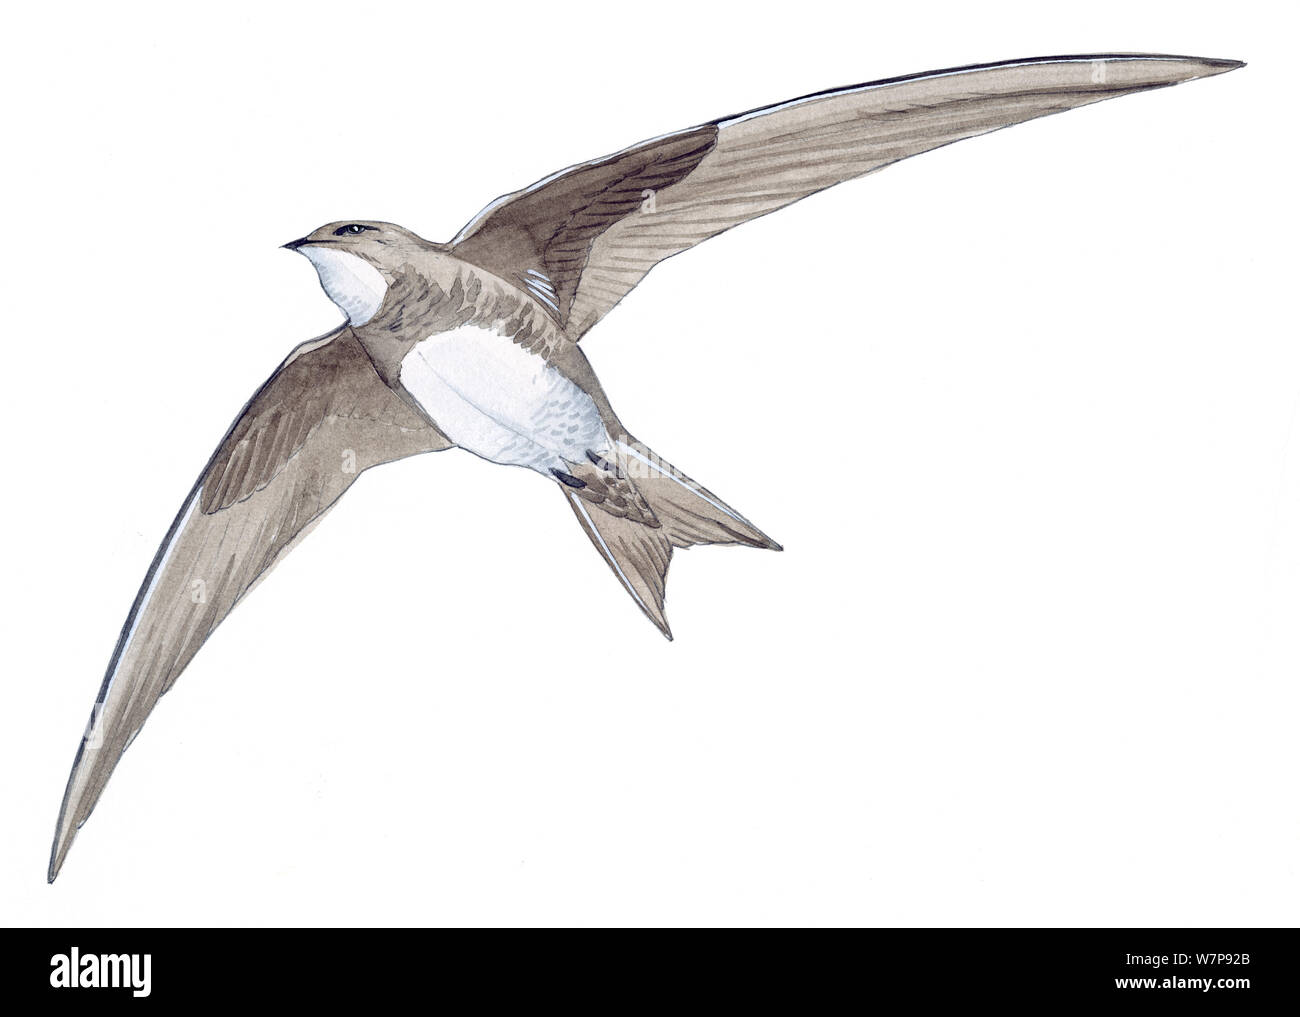 Illustration of Alpine Swift (Tachymarptis melba) in flight. Pencil and watercolor painting. Stock Photo